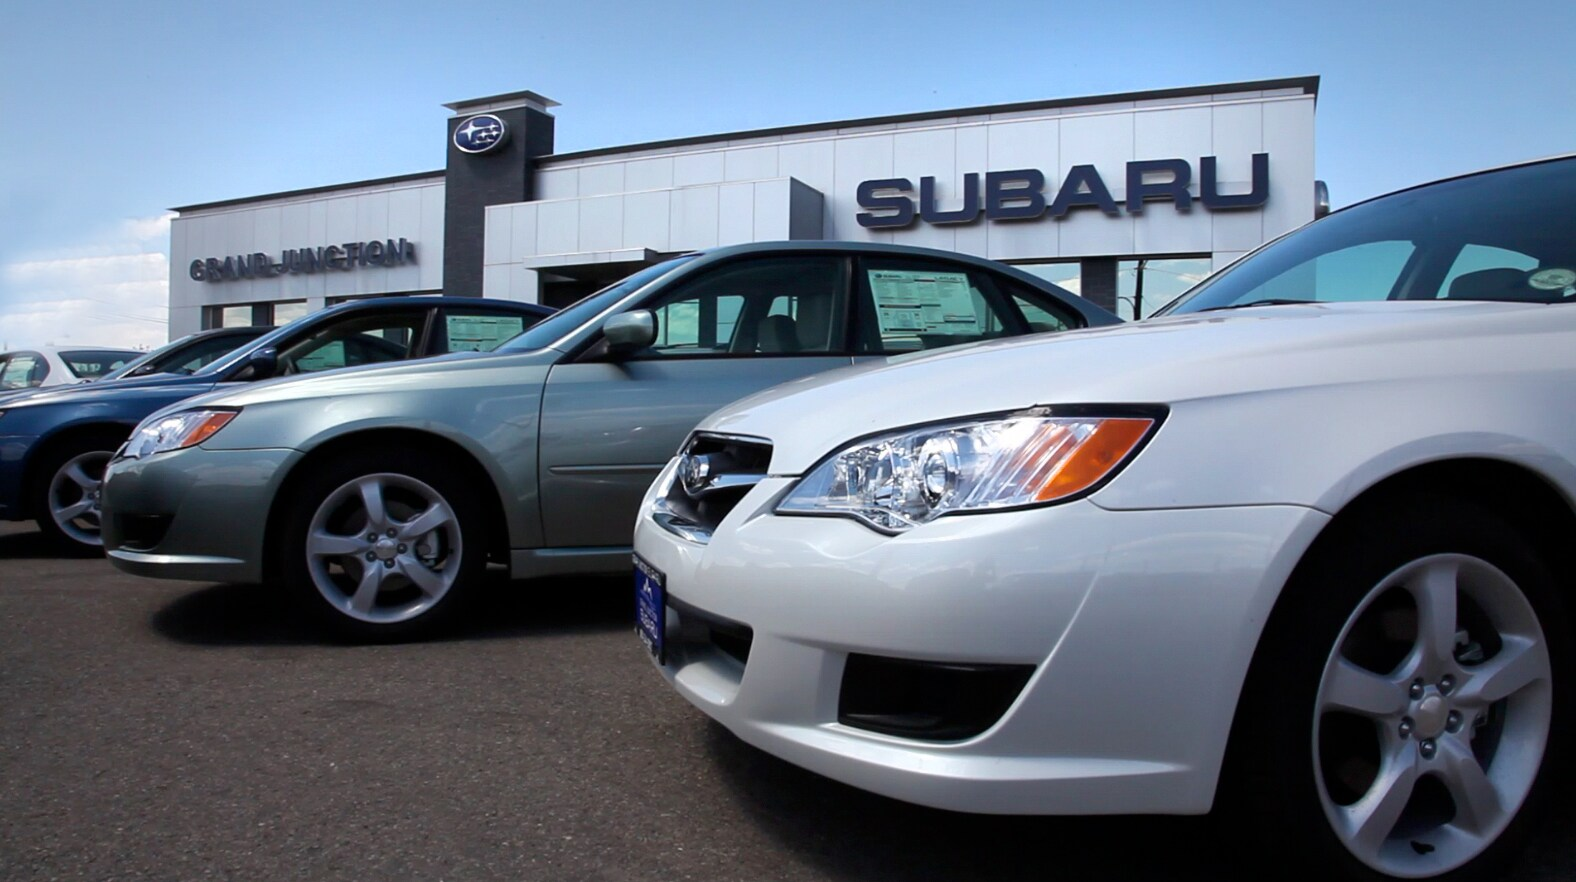 New 2015 2016 Subaru & Used Car Dealer & Auto Service